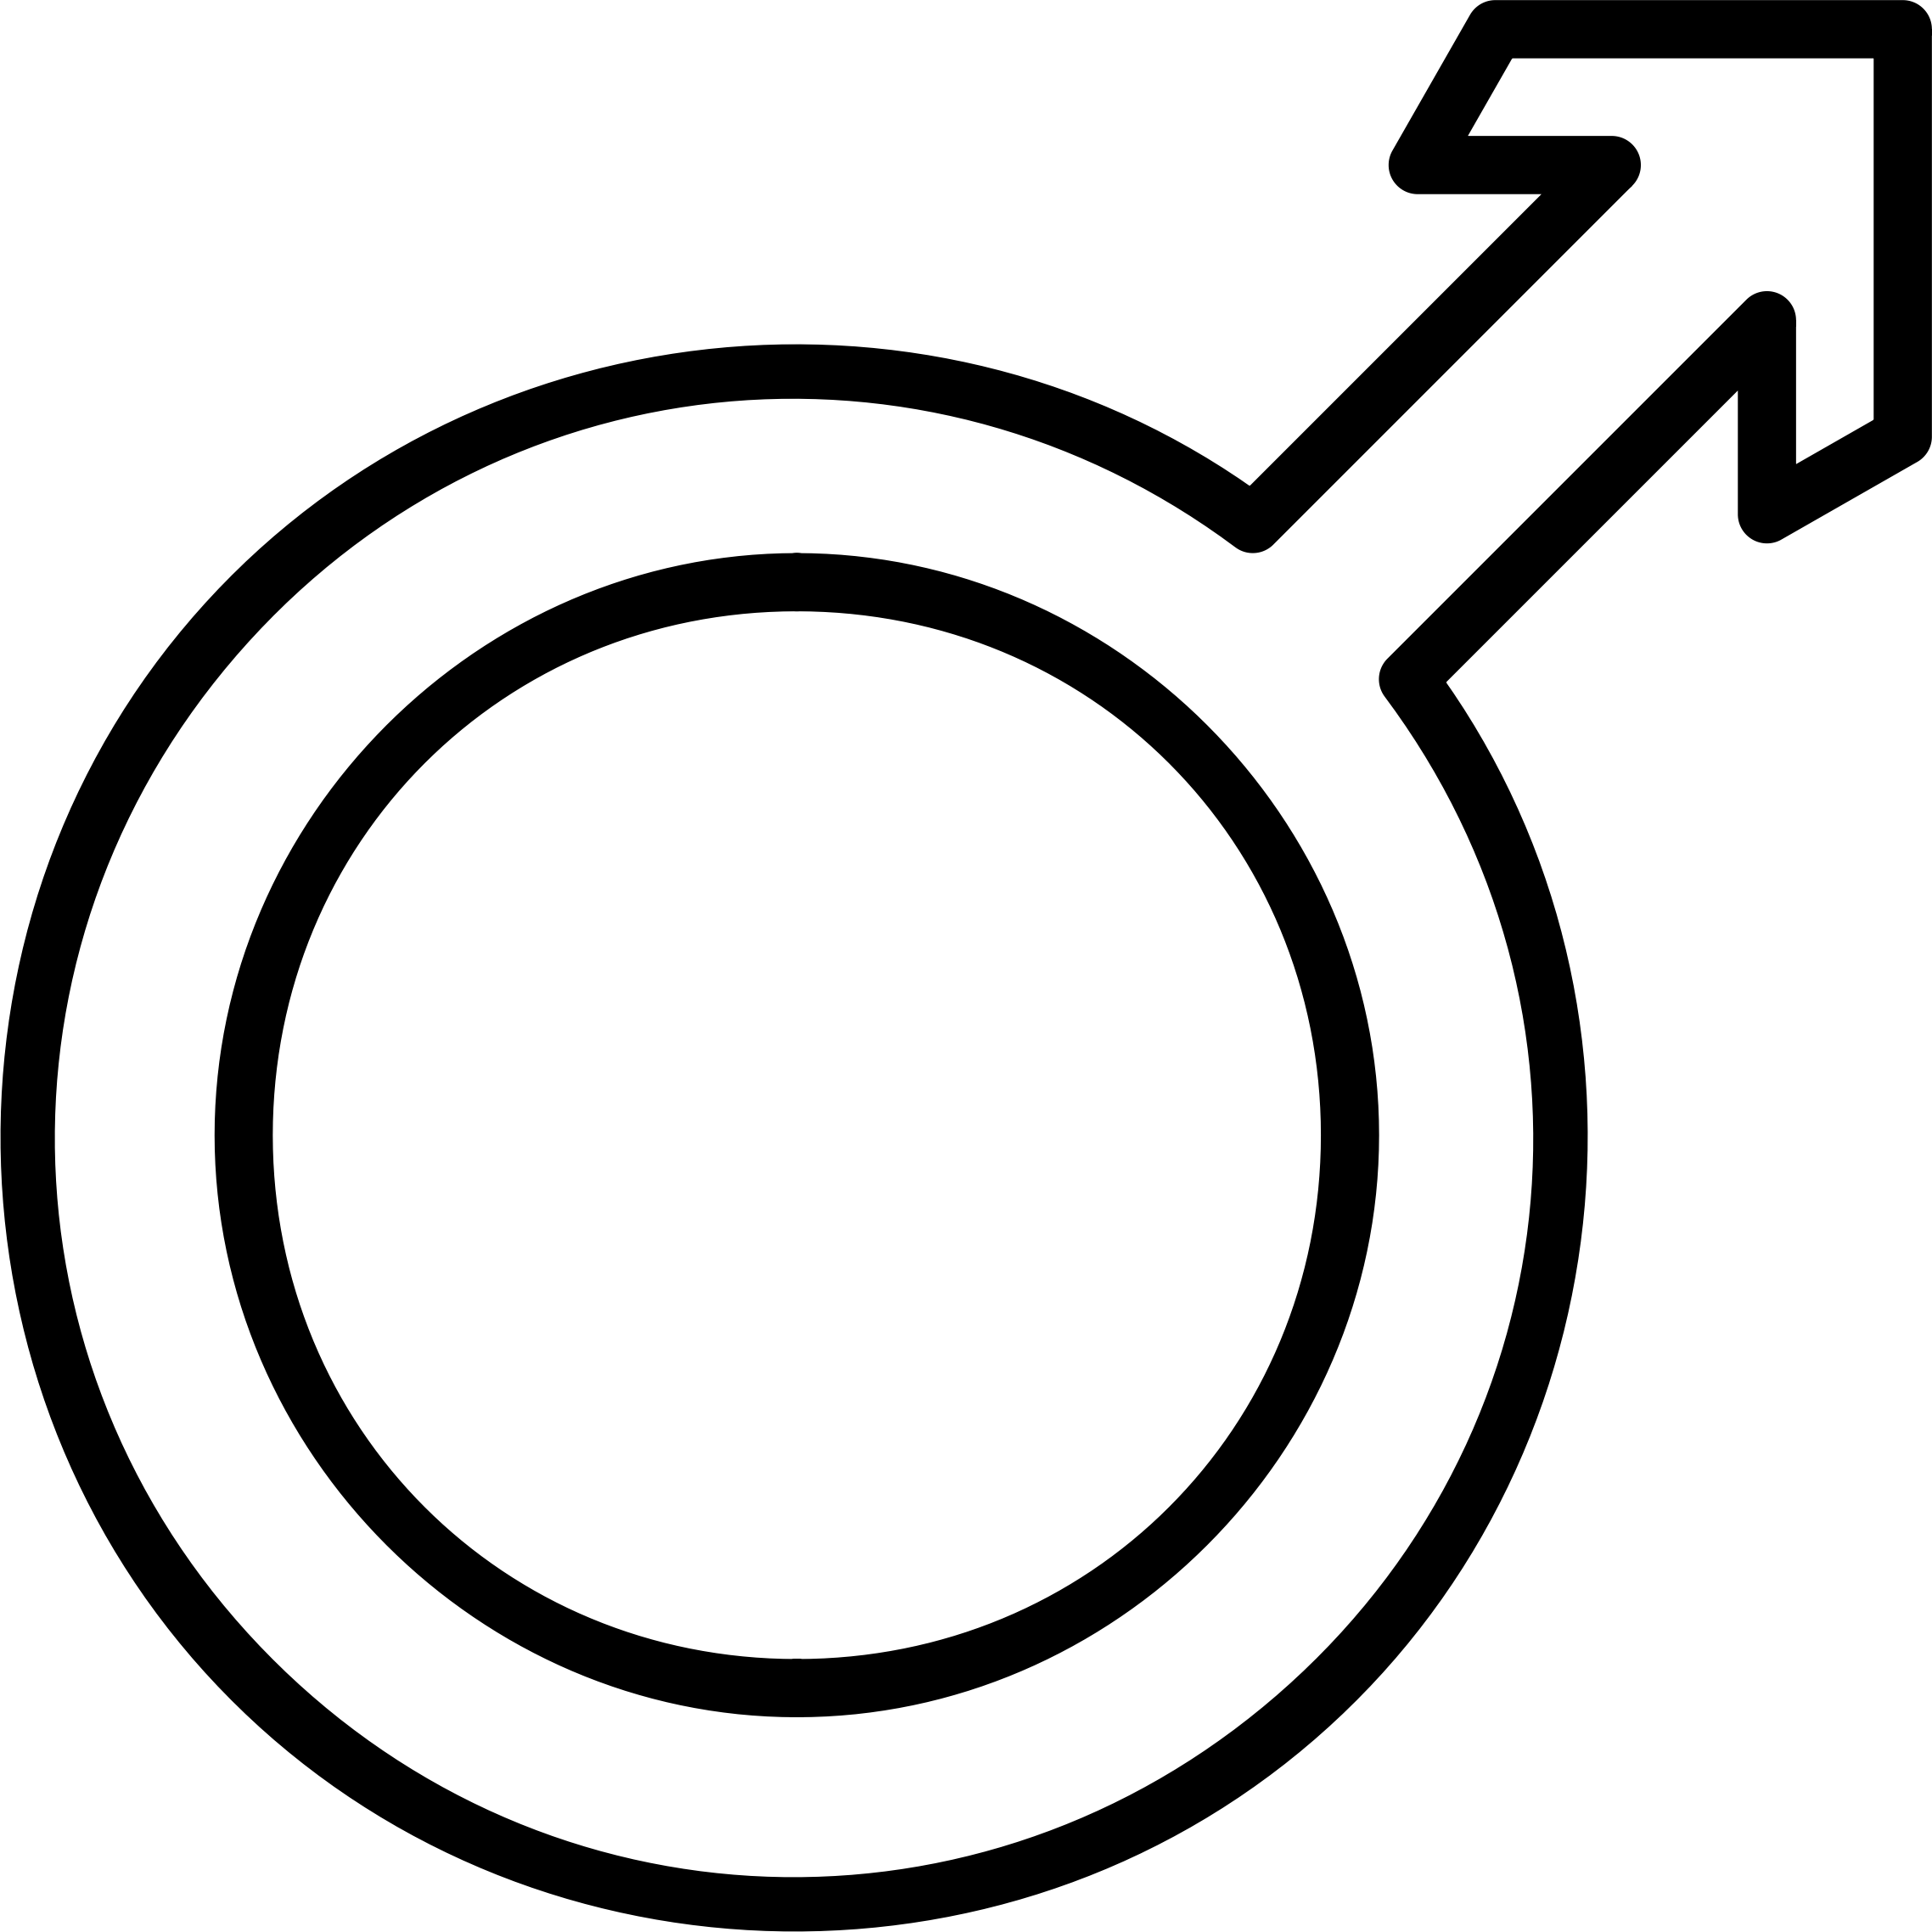 Male Symbol by kumar35885